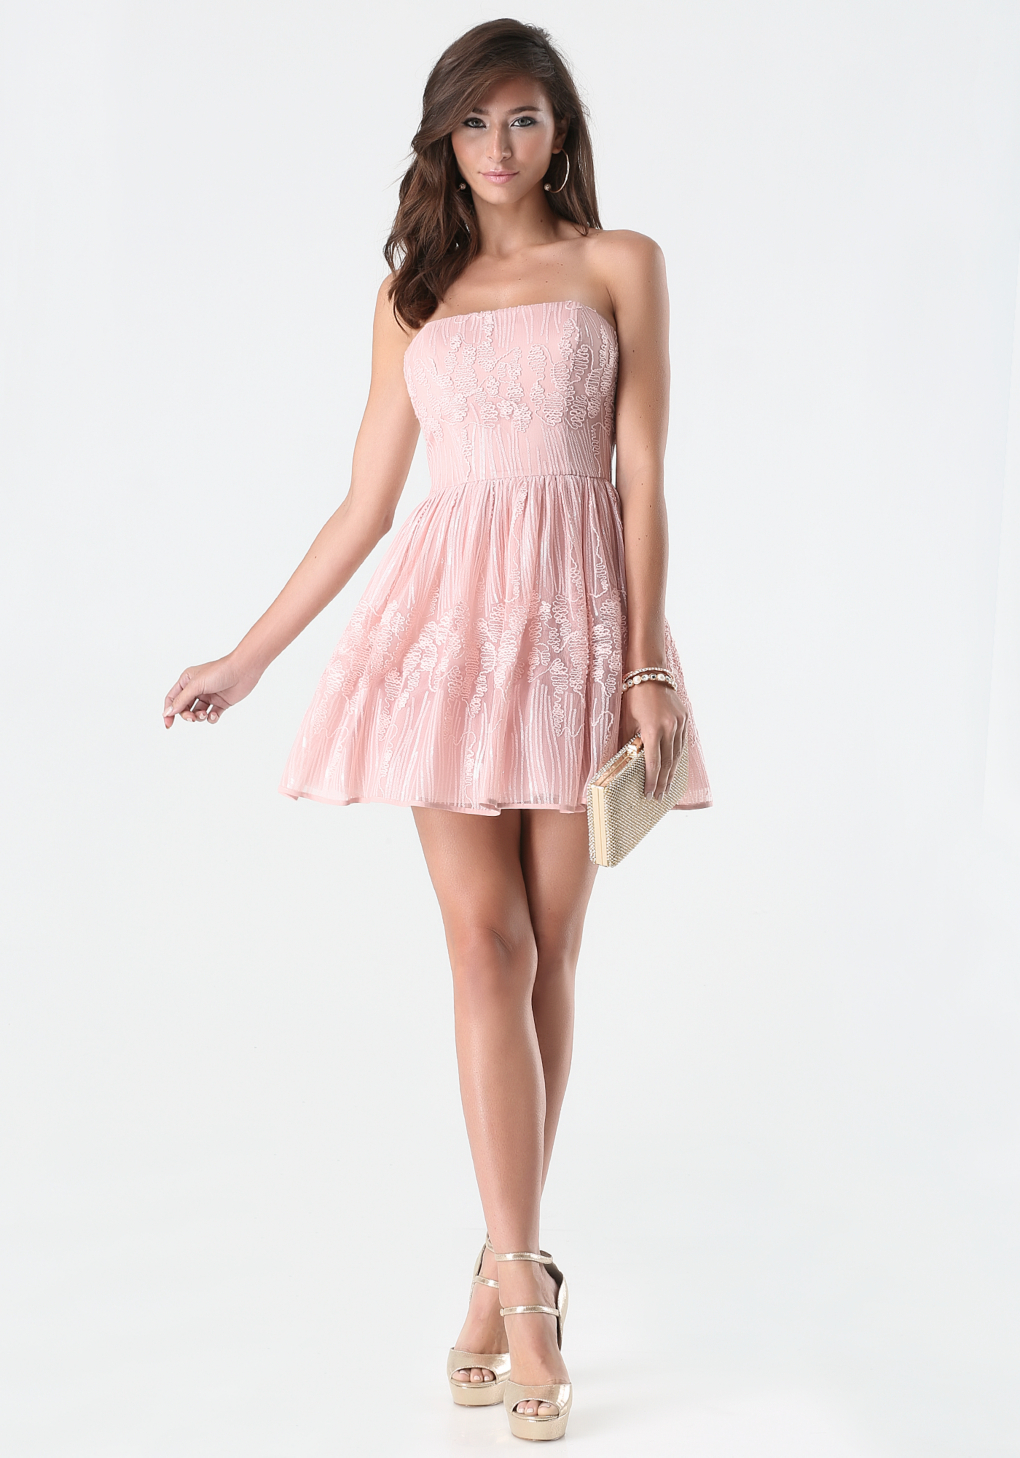 Bebe Sequin Strapless Dress in Pink | Lyst